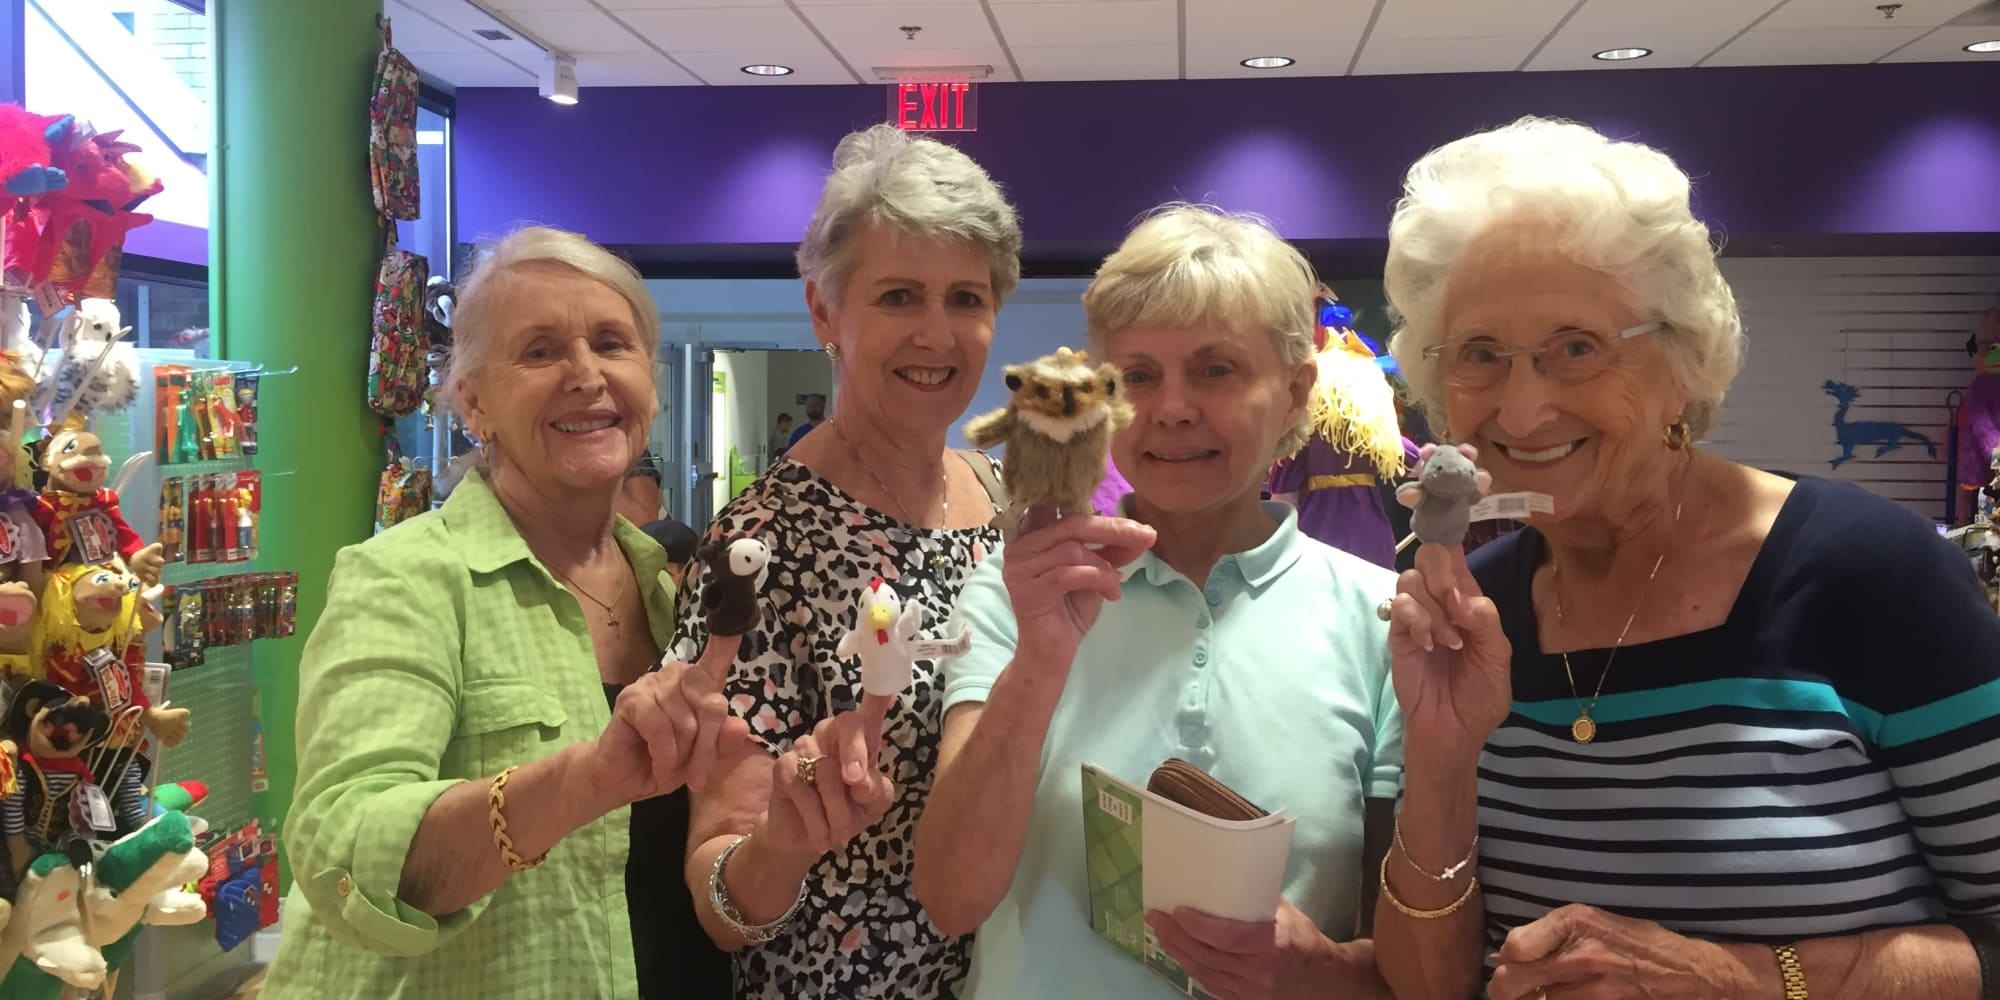 Residents from Somerset Lodge in Gladstone, Oregon holding finger puppets in a store